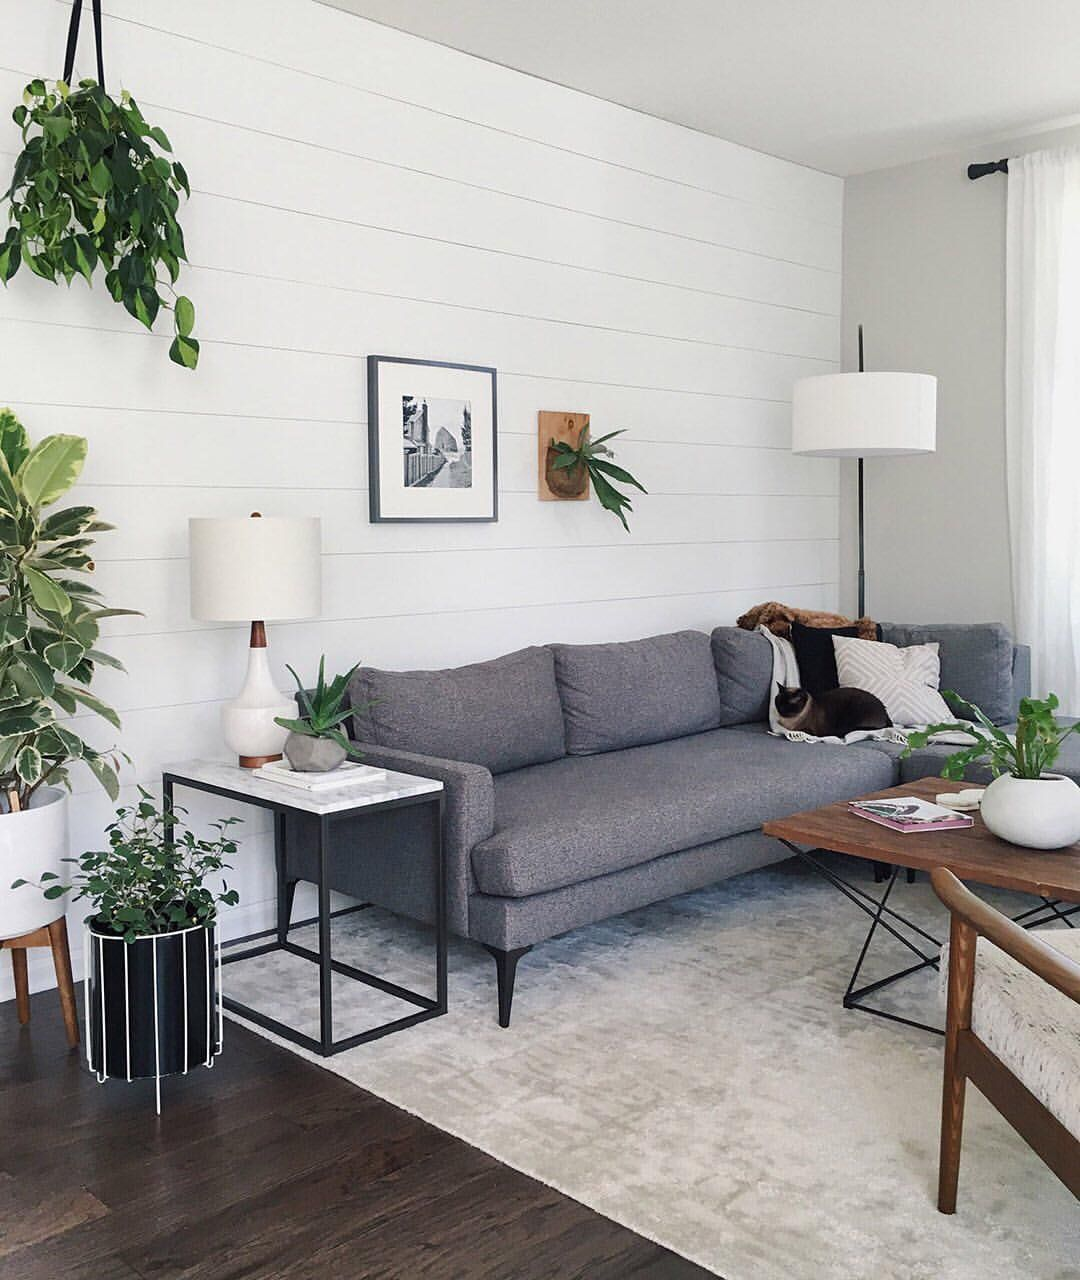 West Elm   A Functional, Timeless Home In Portland. Find This Pin And More  On Interior Decor: Living Room ...